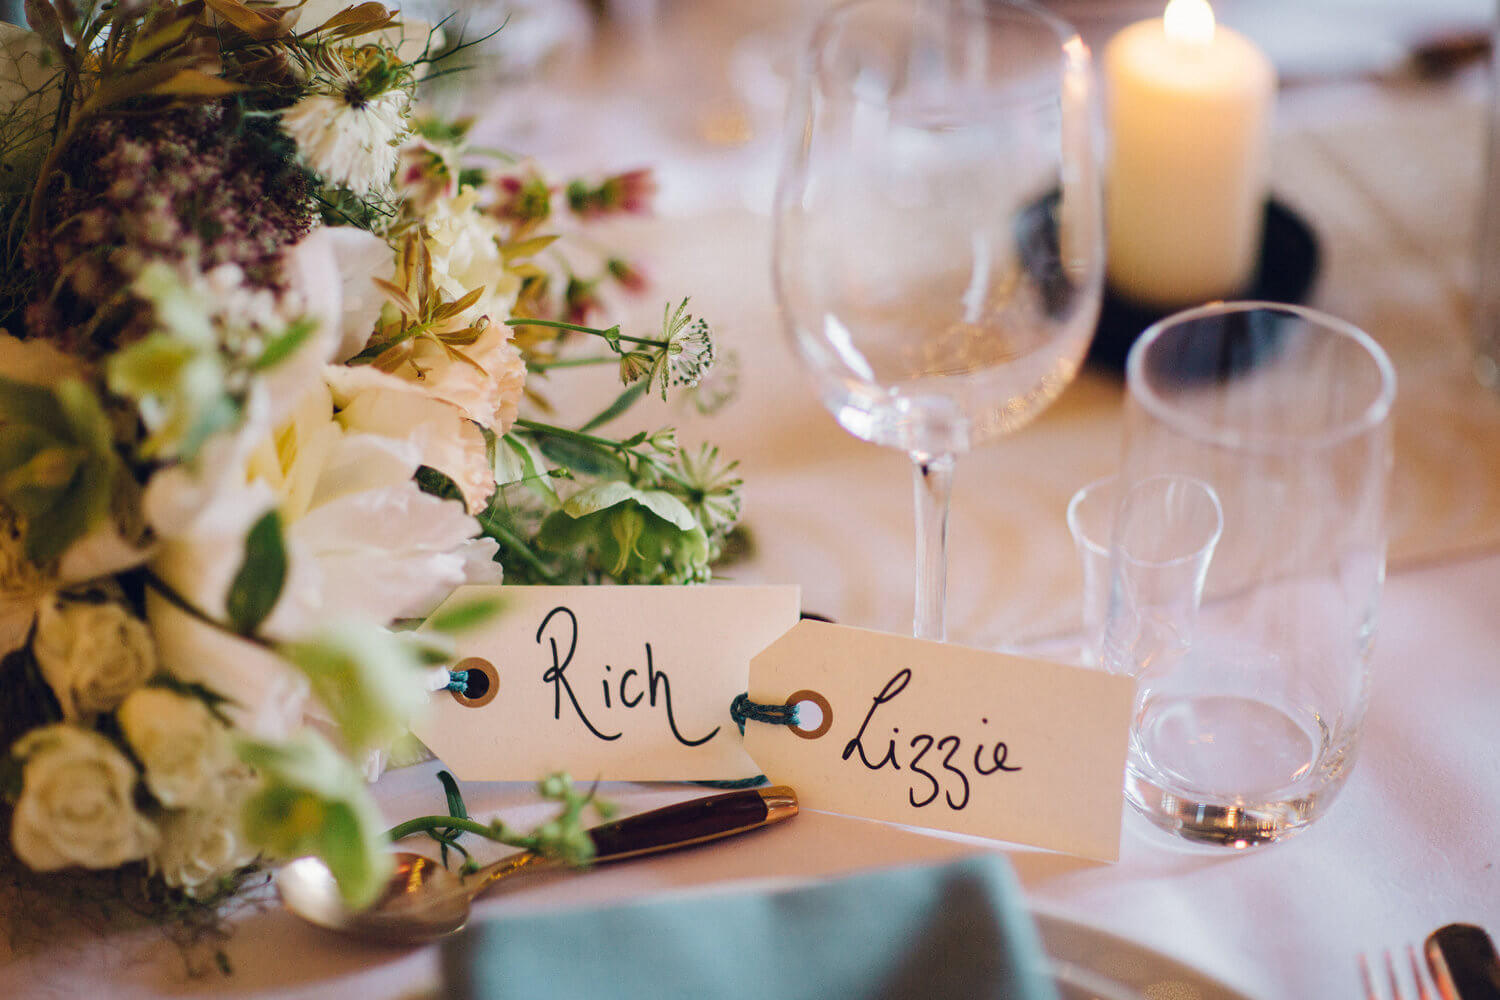 Quirky Venue, Non-traditional wedding planner, London Wedding coordination, Bespoke weddings, Brixton Wedding, Informal, Beautiful tablescape